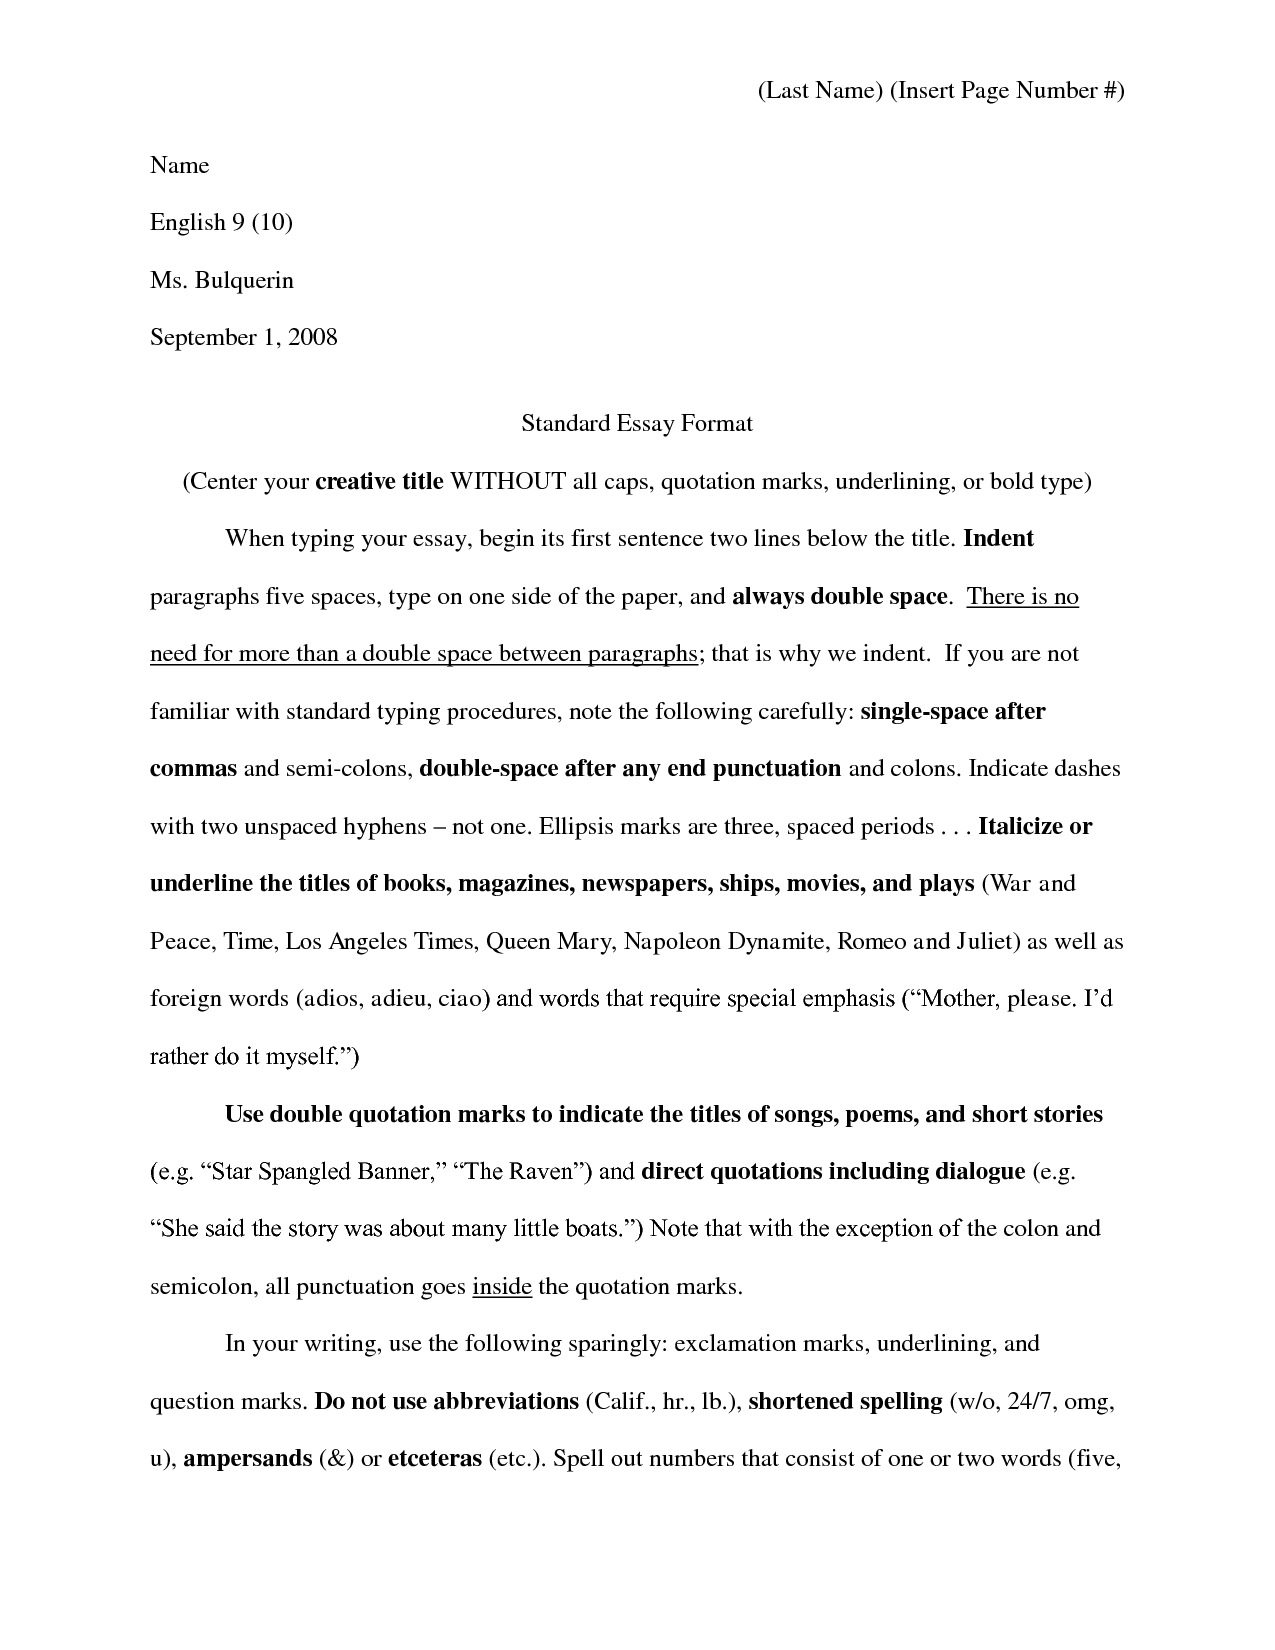 Dialogue essay about healthy lifestyle